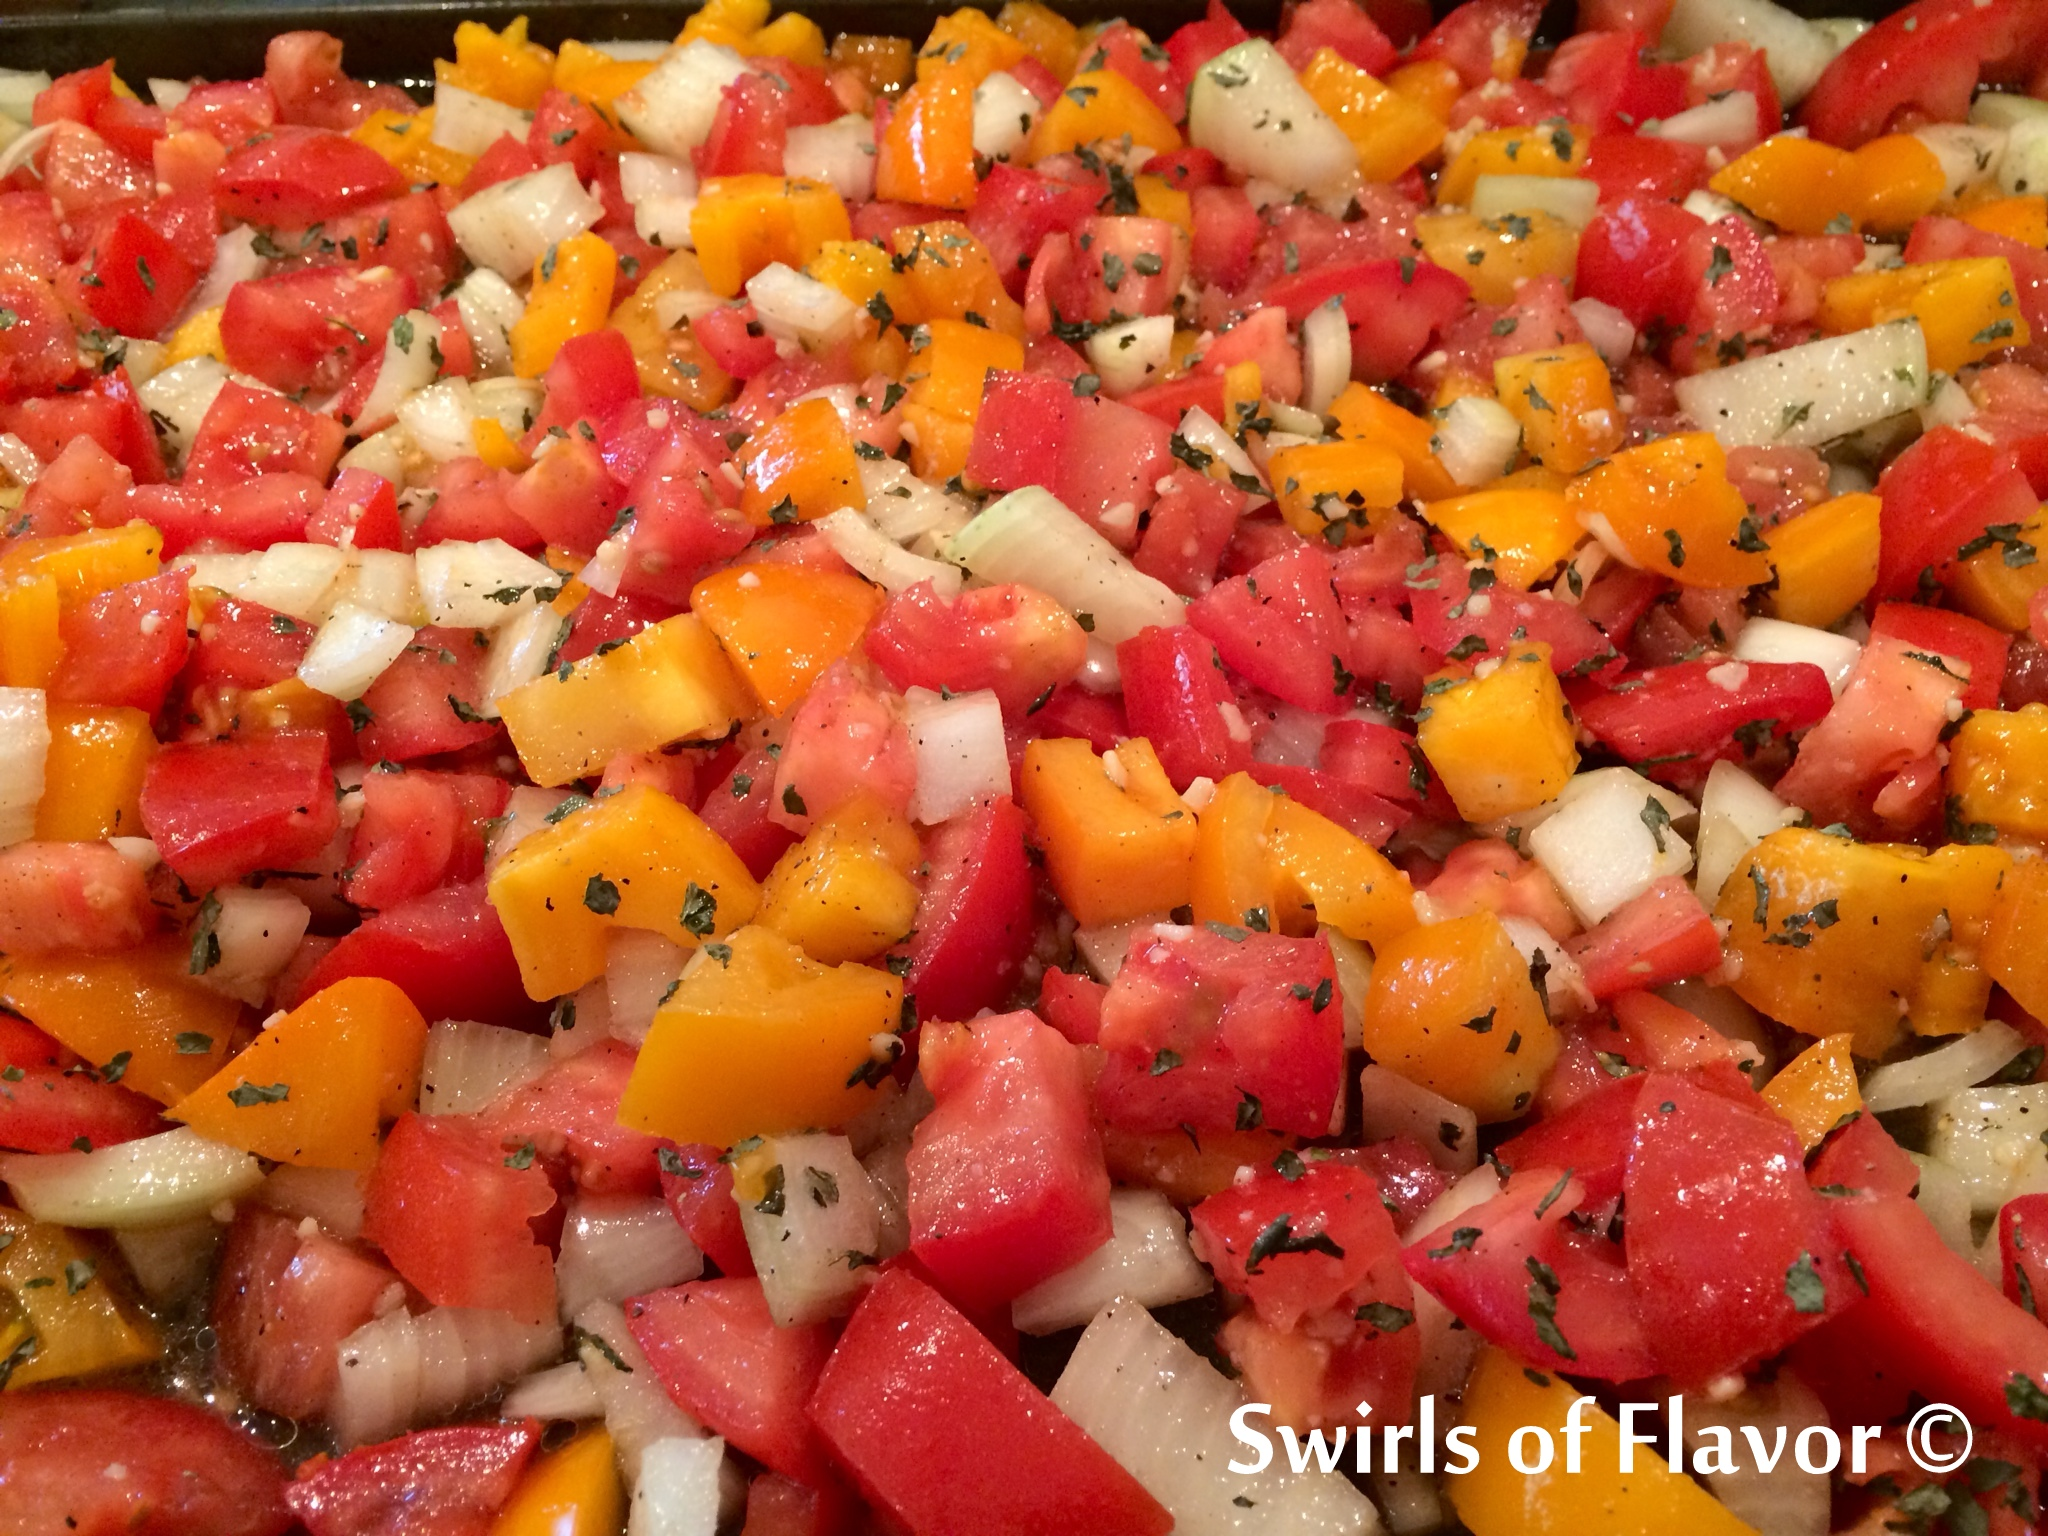 chopped rred and yellow plum tomatoes with onion and seasonings